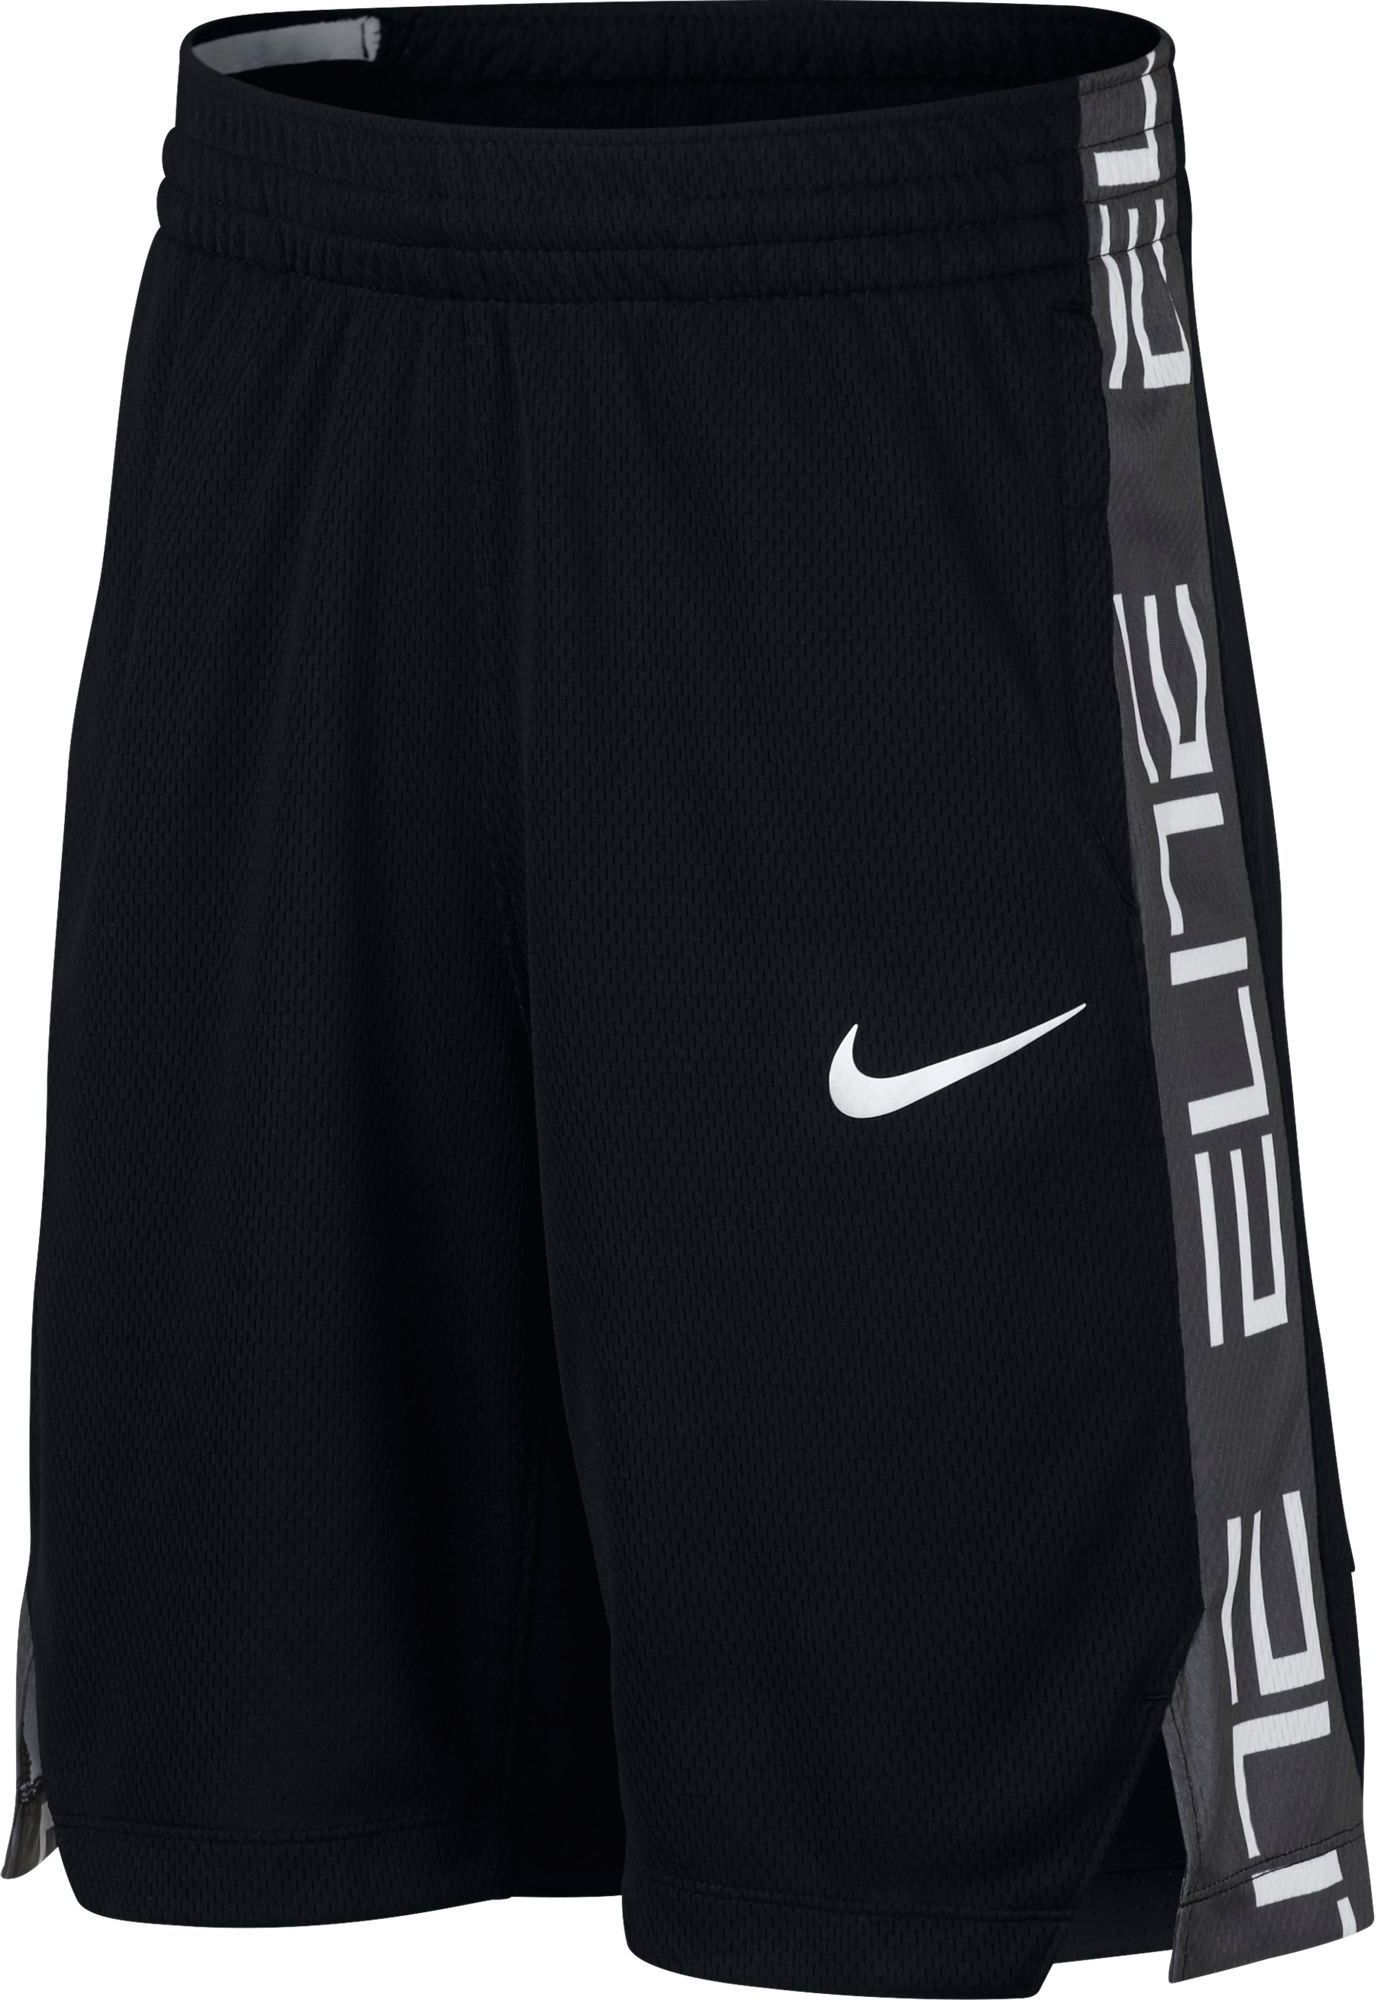 857d3020f91ff Nike Boys' Dry Elite Graphic Basketball Shorts | Products ...